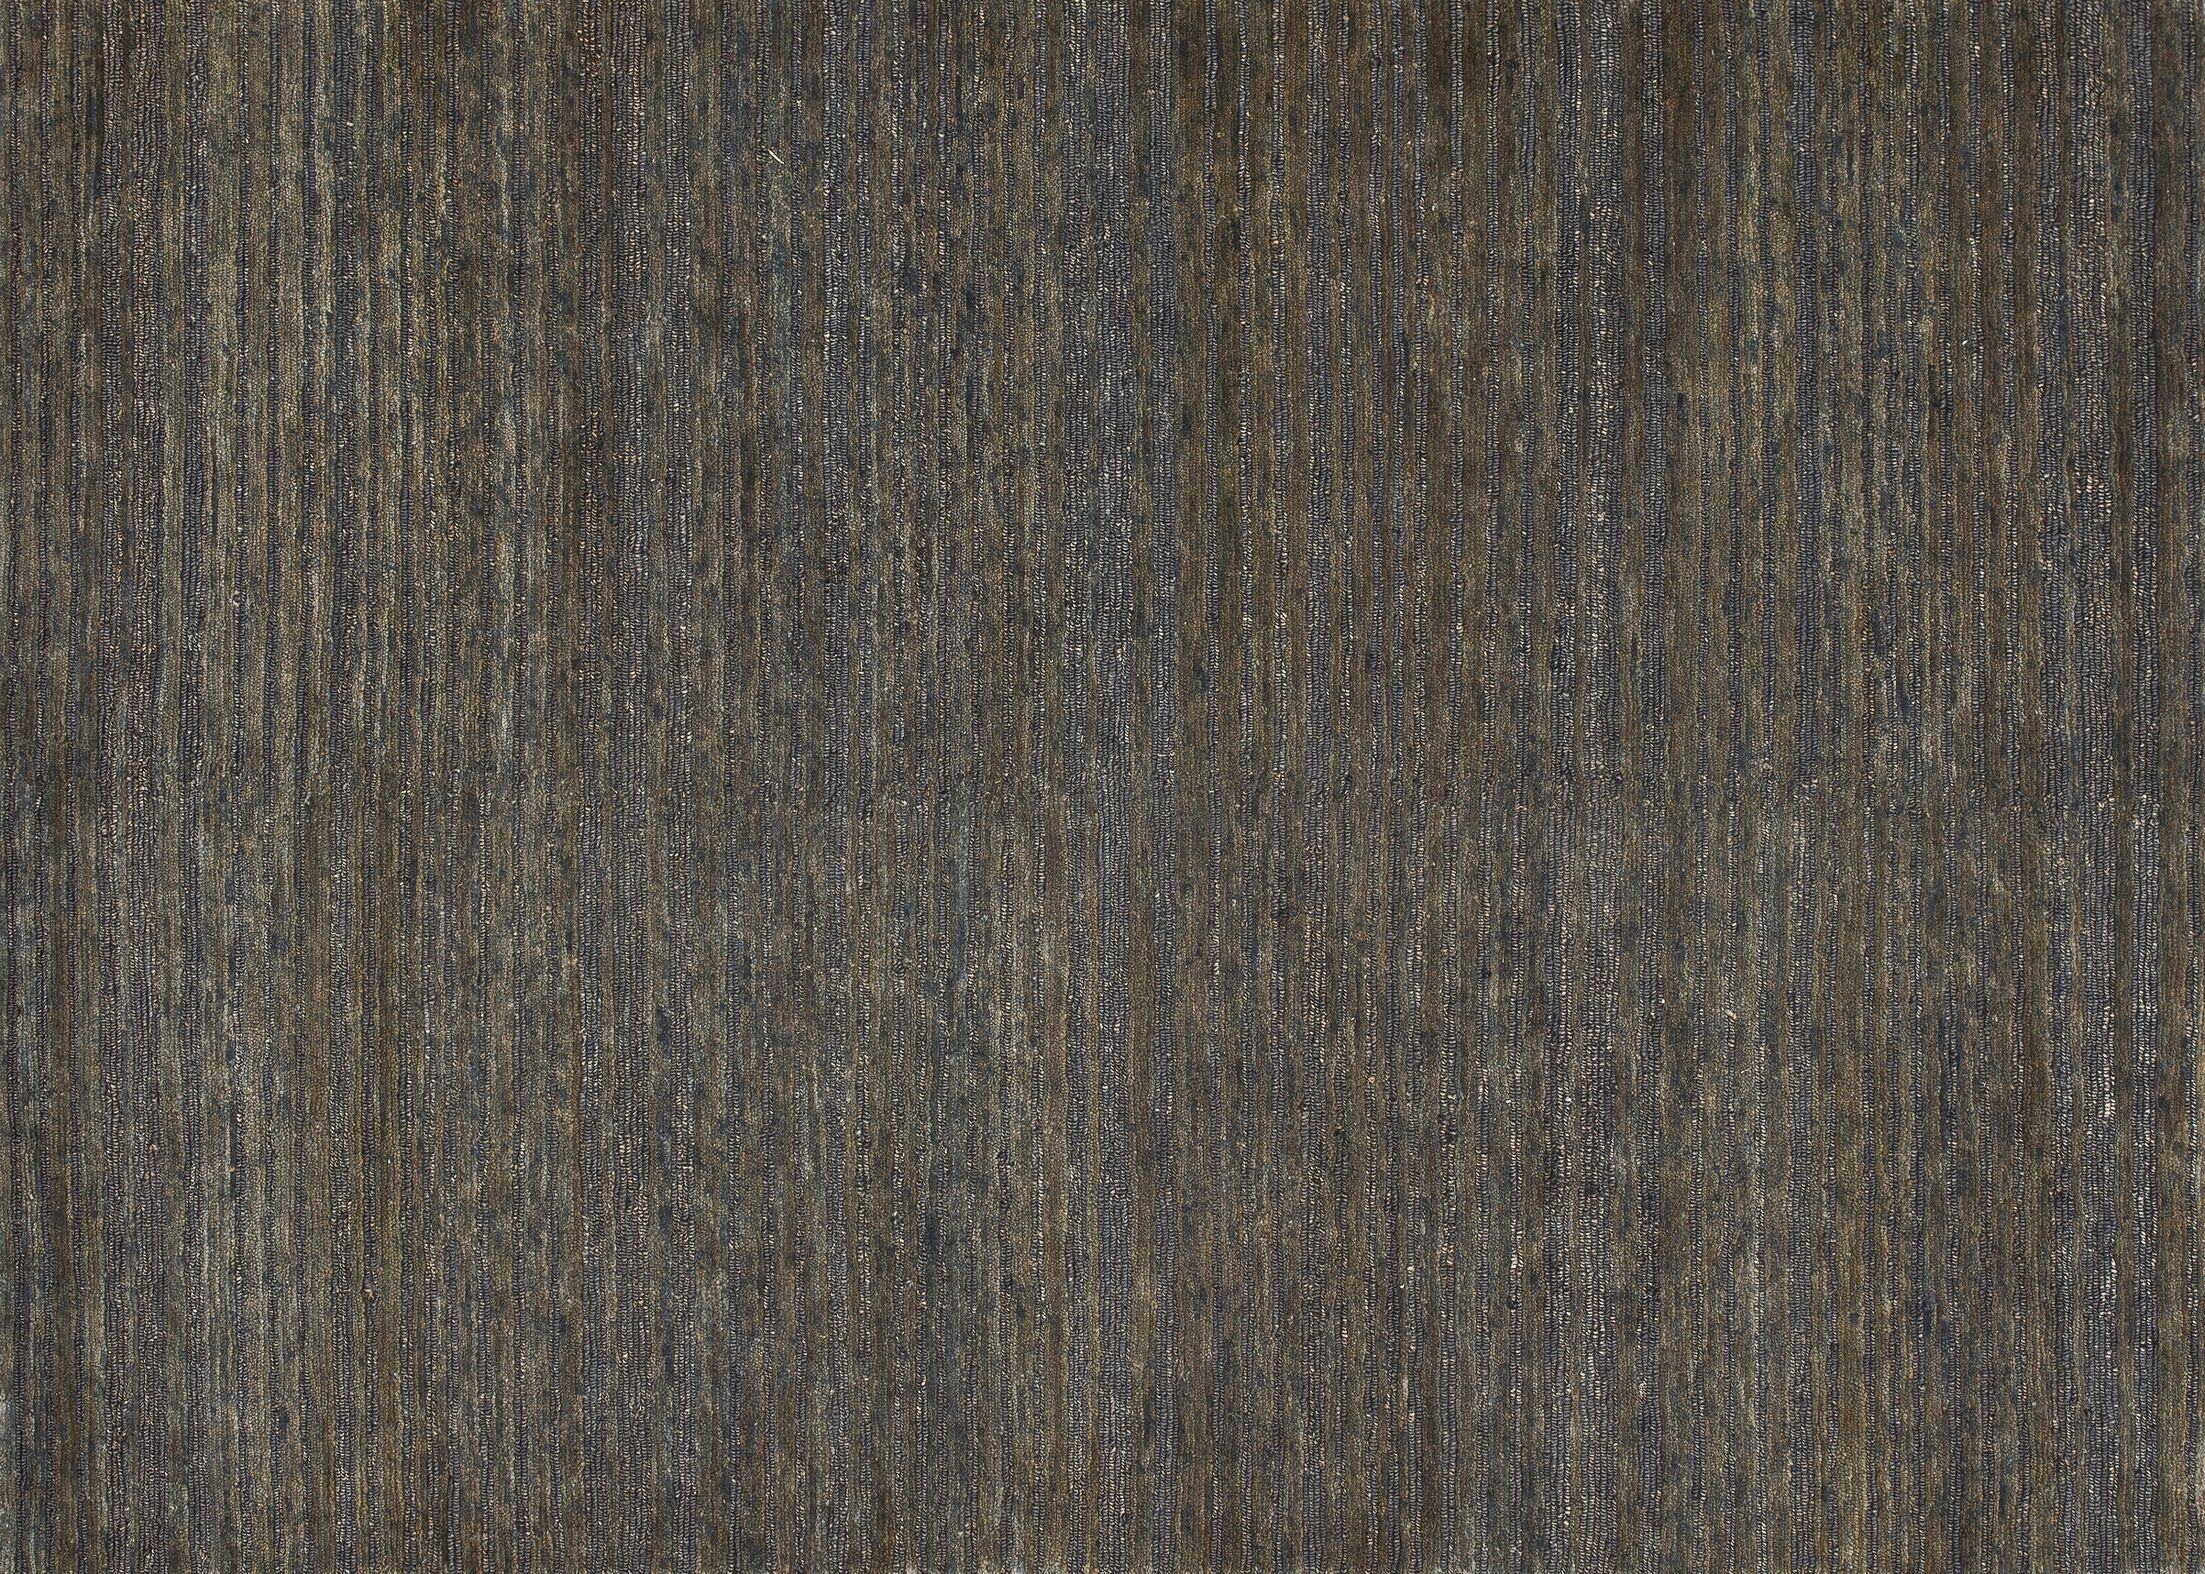 Turley Hand-Knotted Brown Area Rug Rug Size: Rectangle 7'9